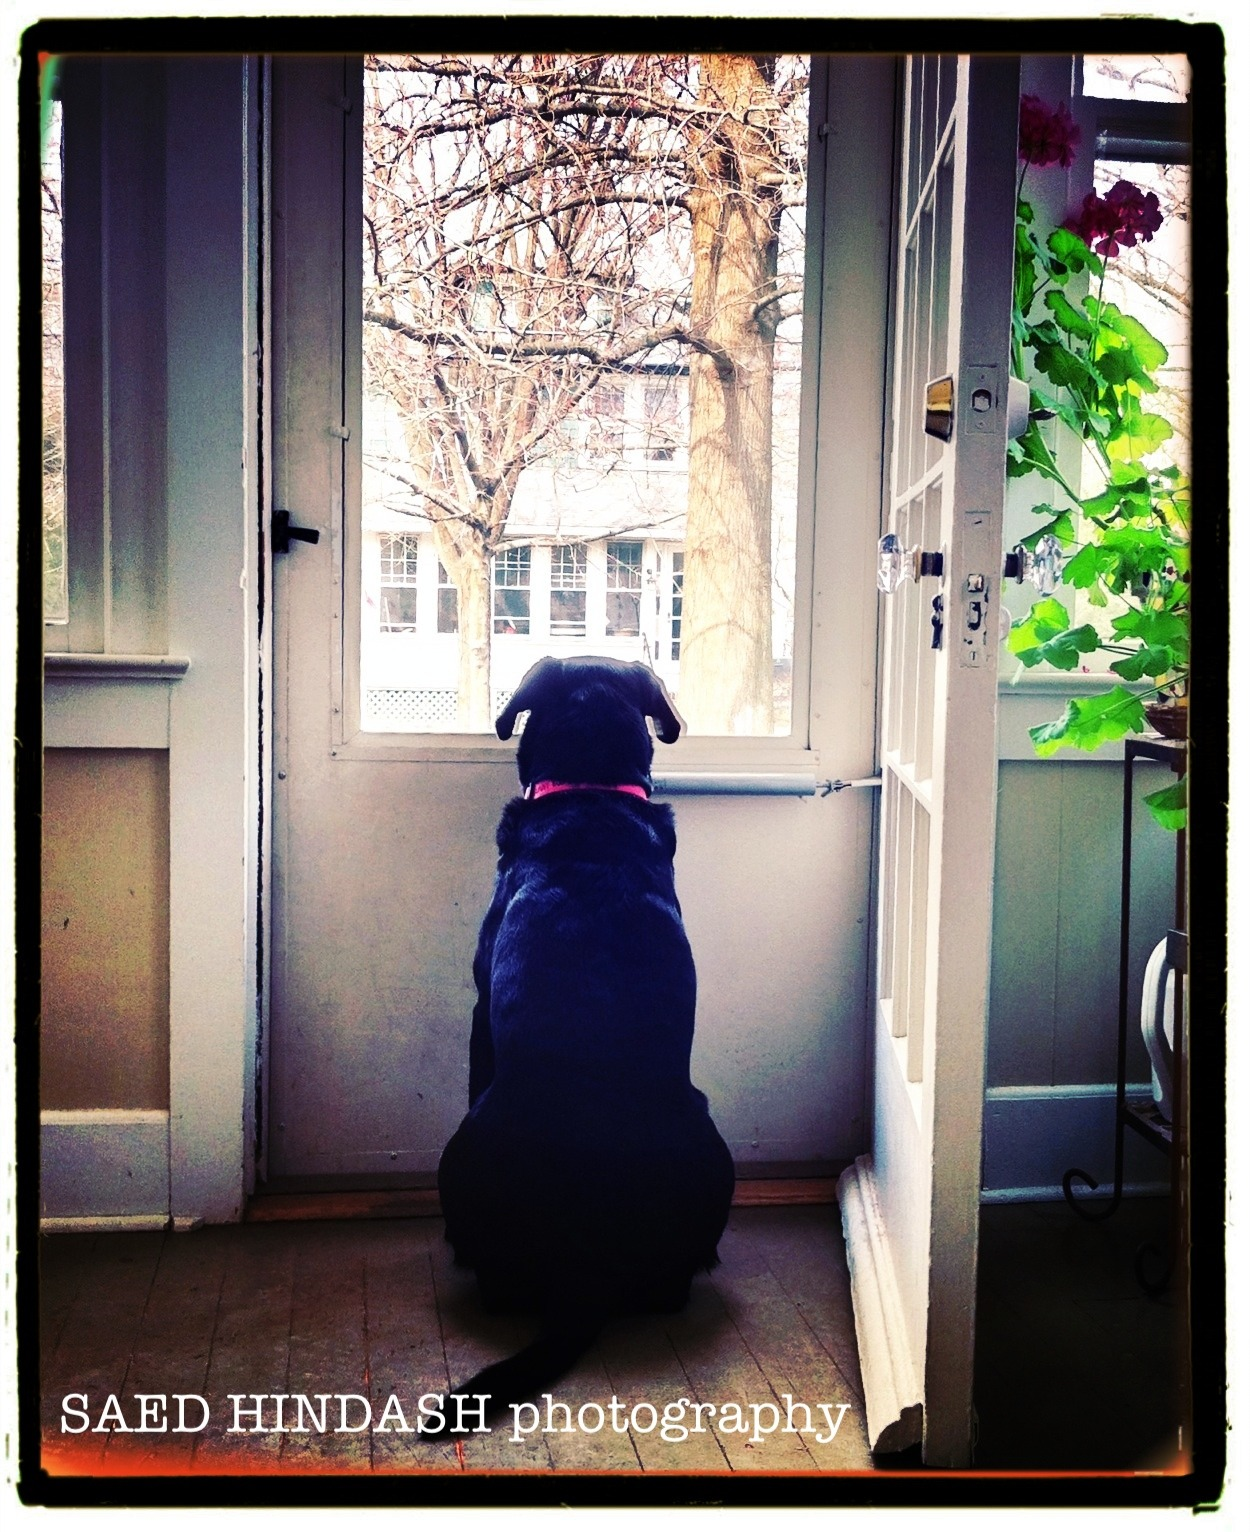 Our dog waits for family to come home.